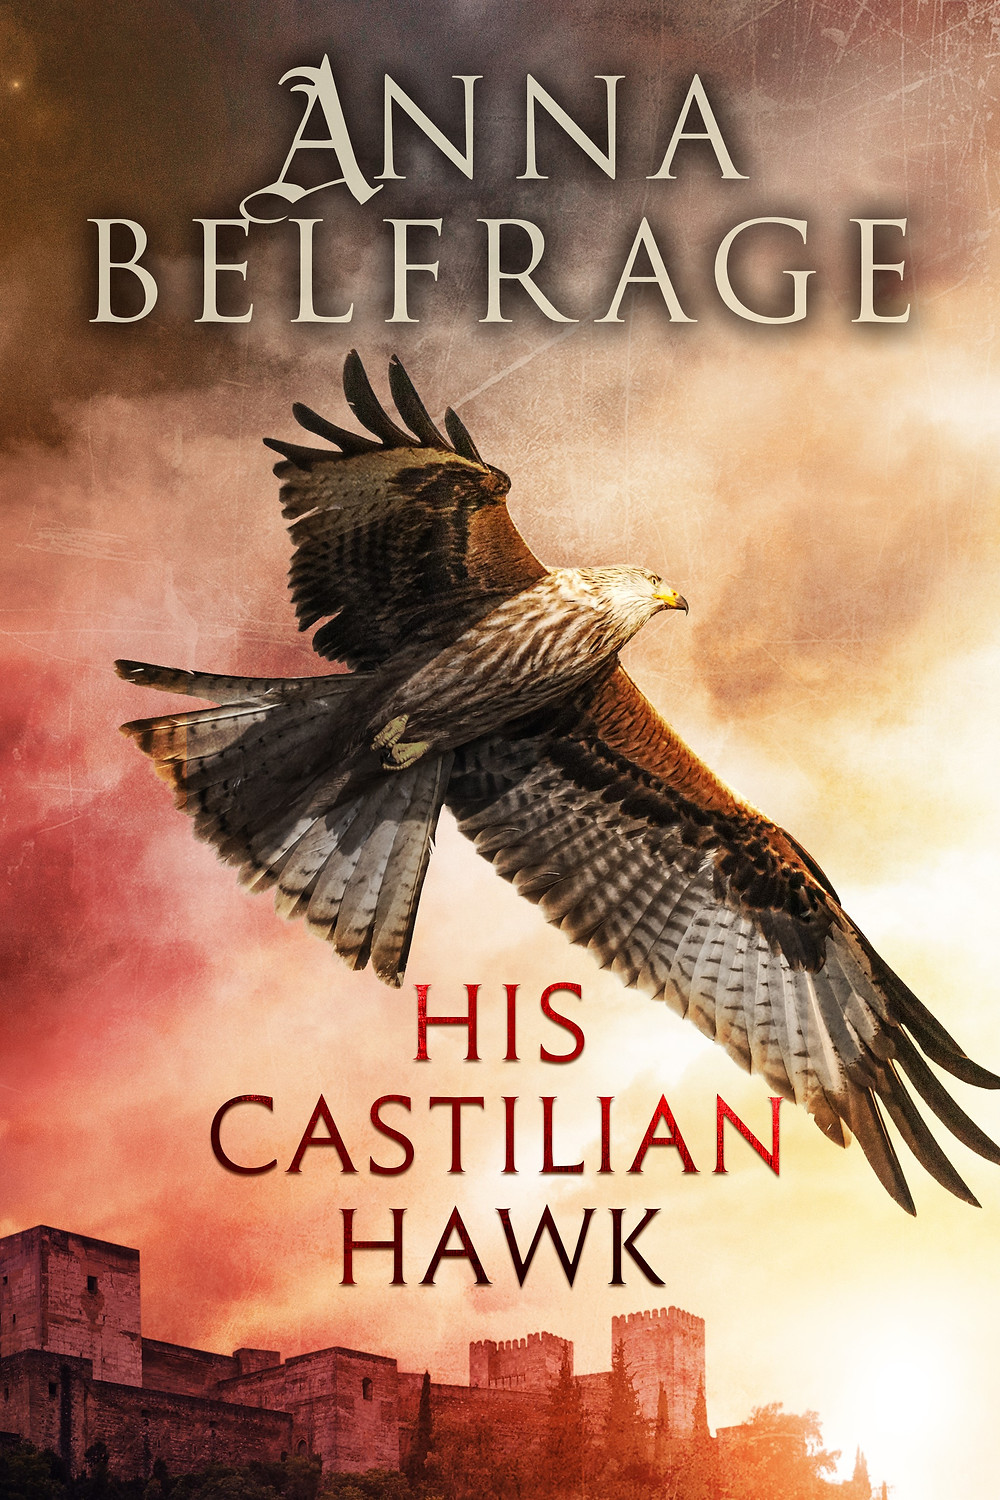 His Castilian Hawk by Anna Belfrage